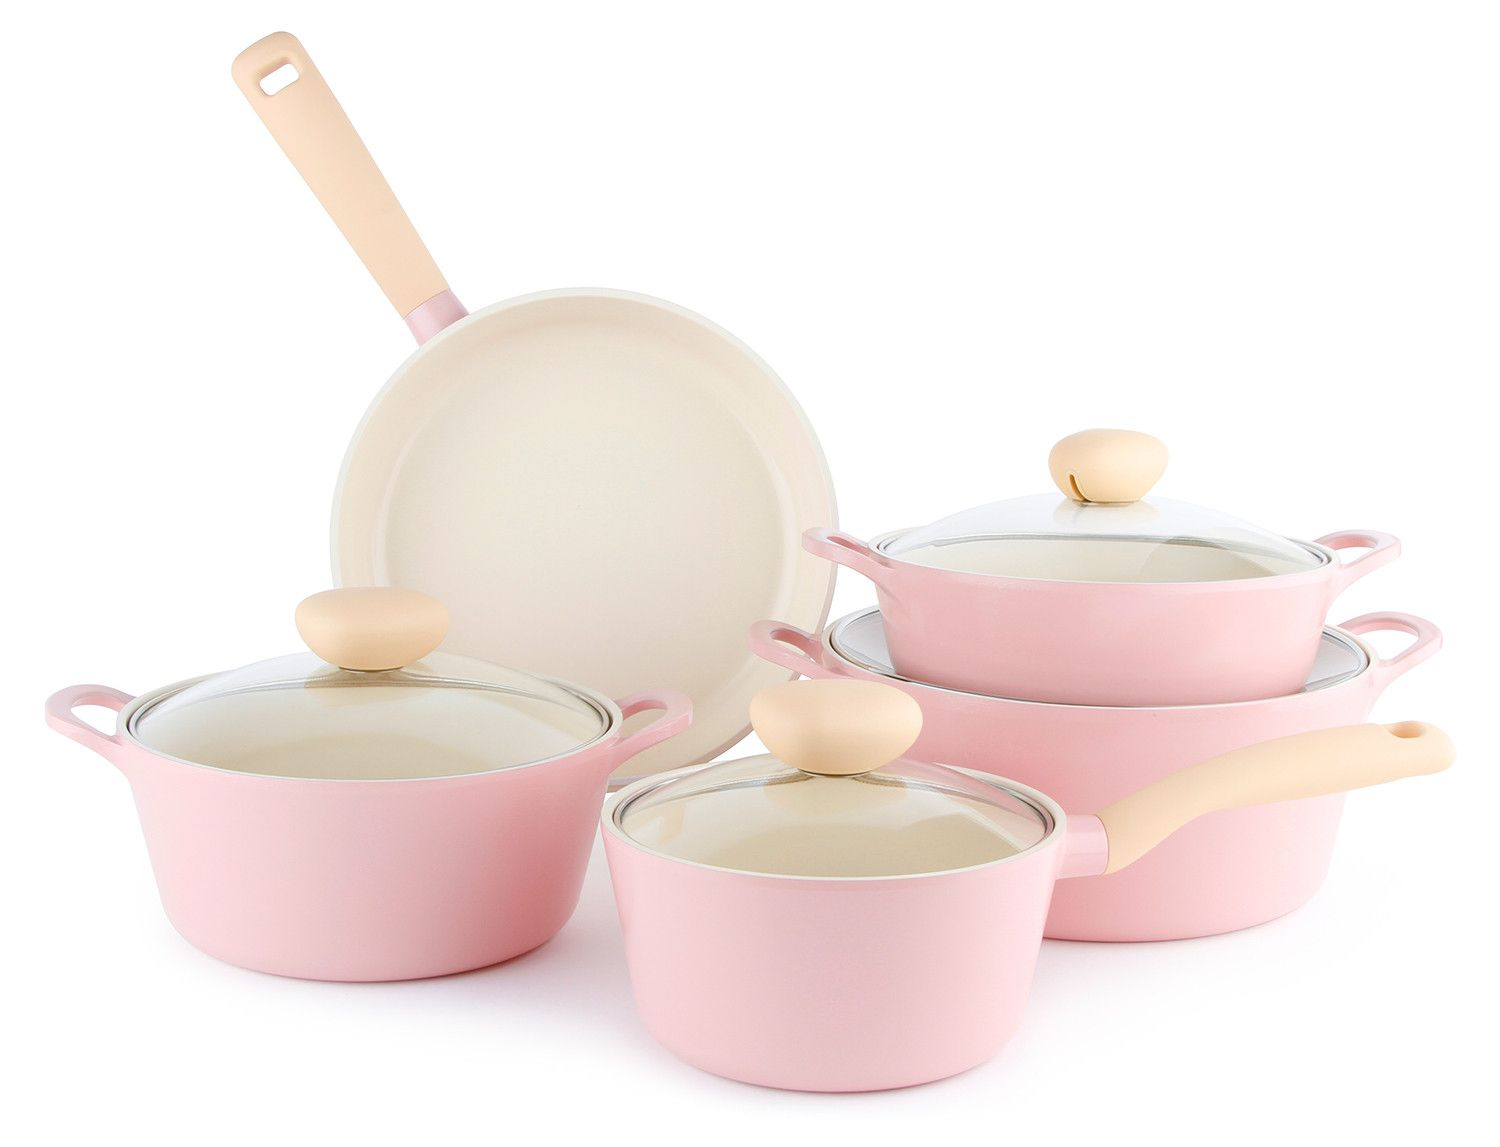 Retro 9 Piece Ceramic Nonstick Cookware Set in Pink, Glass Lid